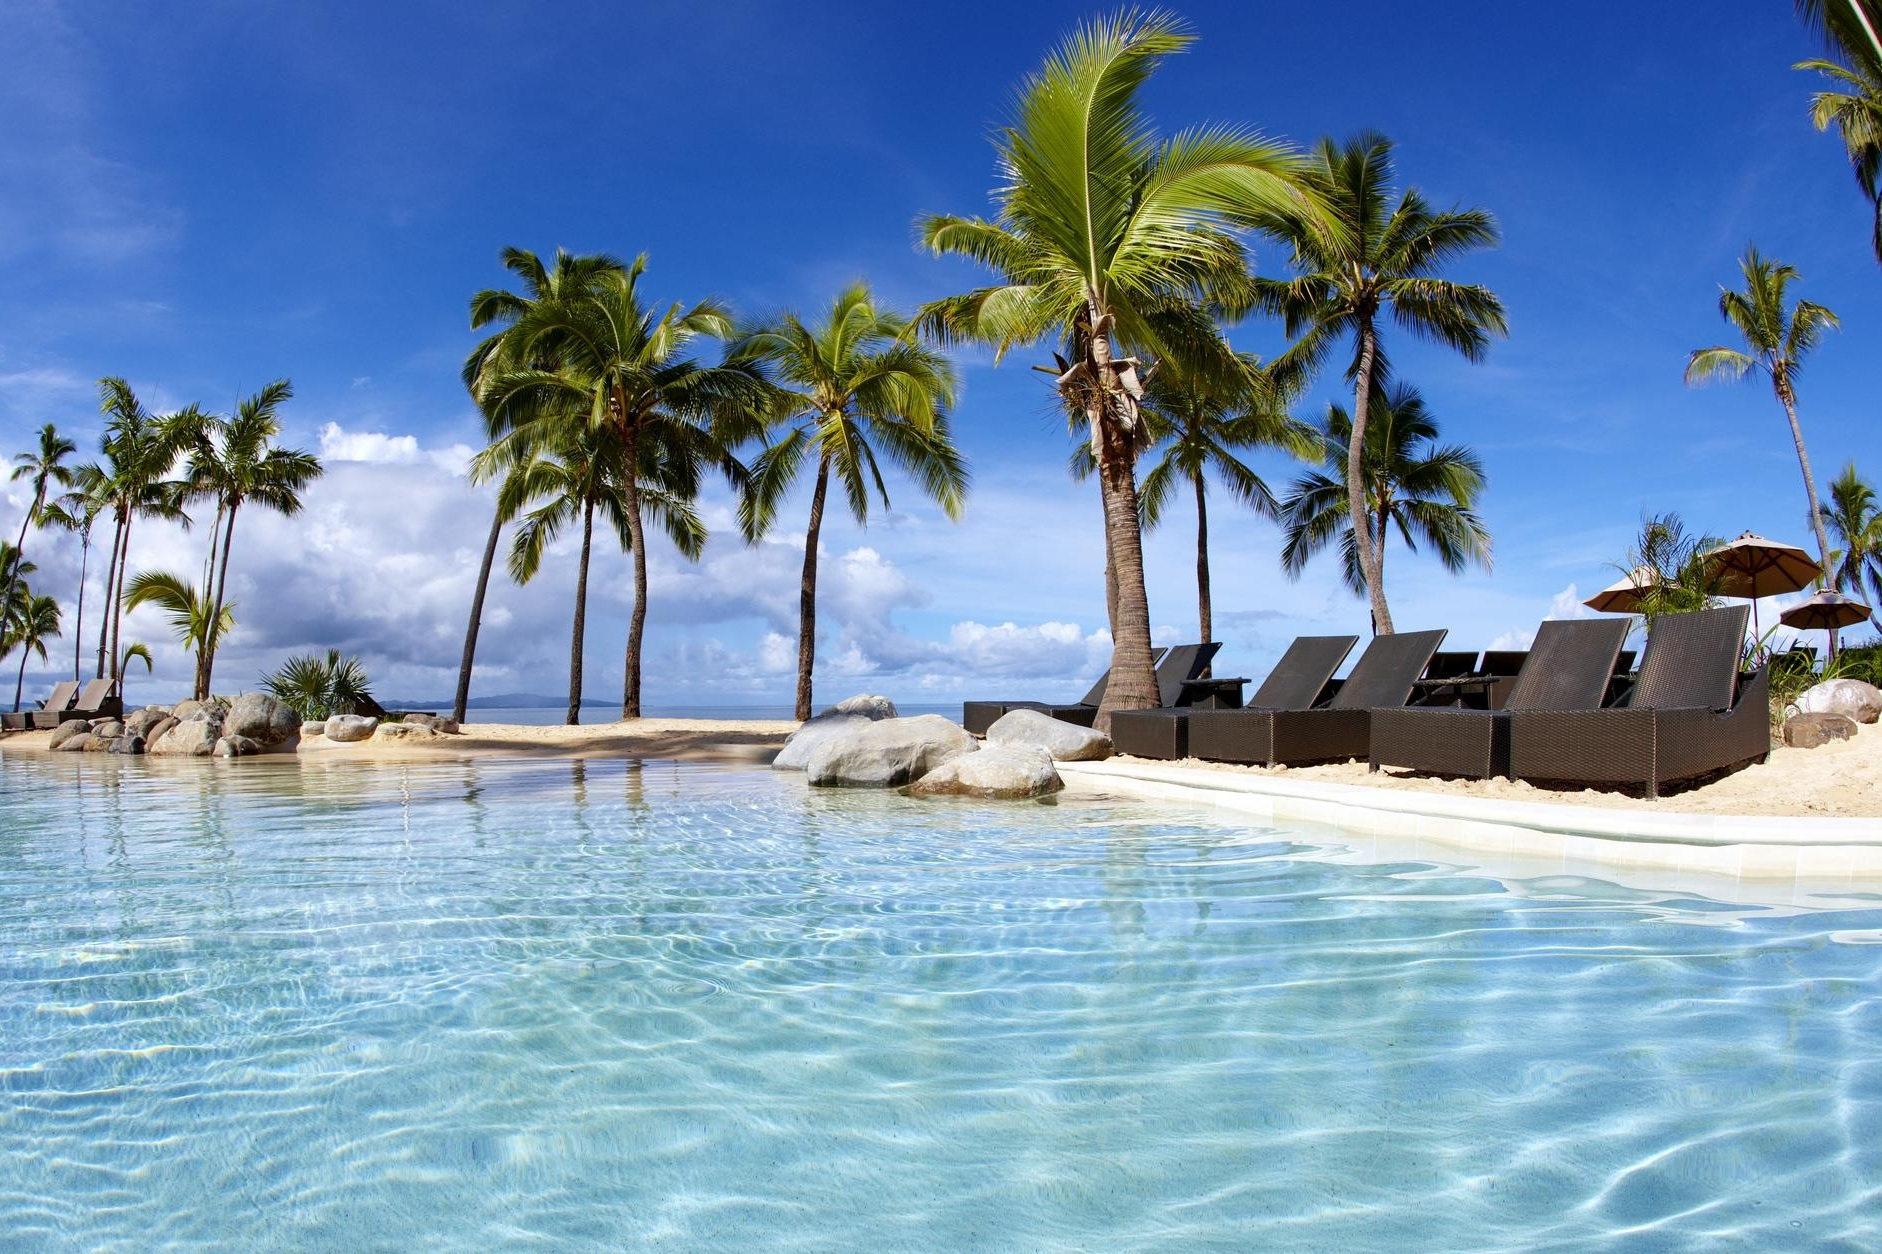 Lock in a free night at the Sheraton Fiji Resort for 35,000 Bonvoy points